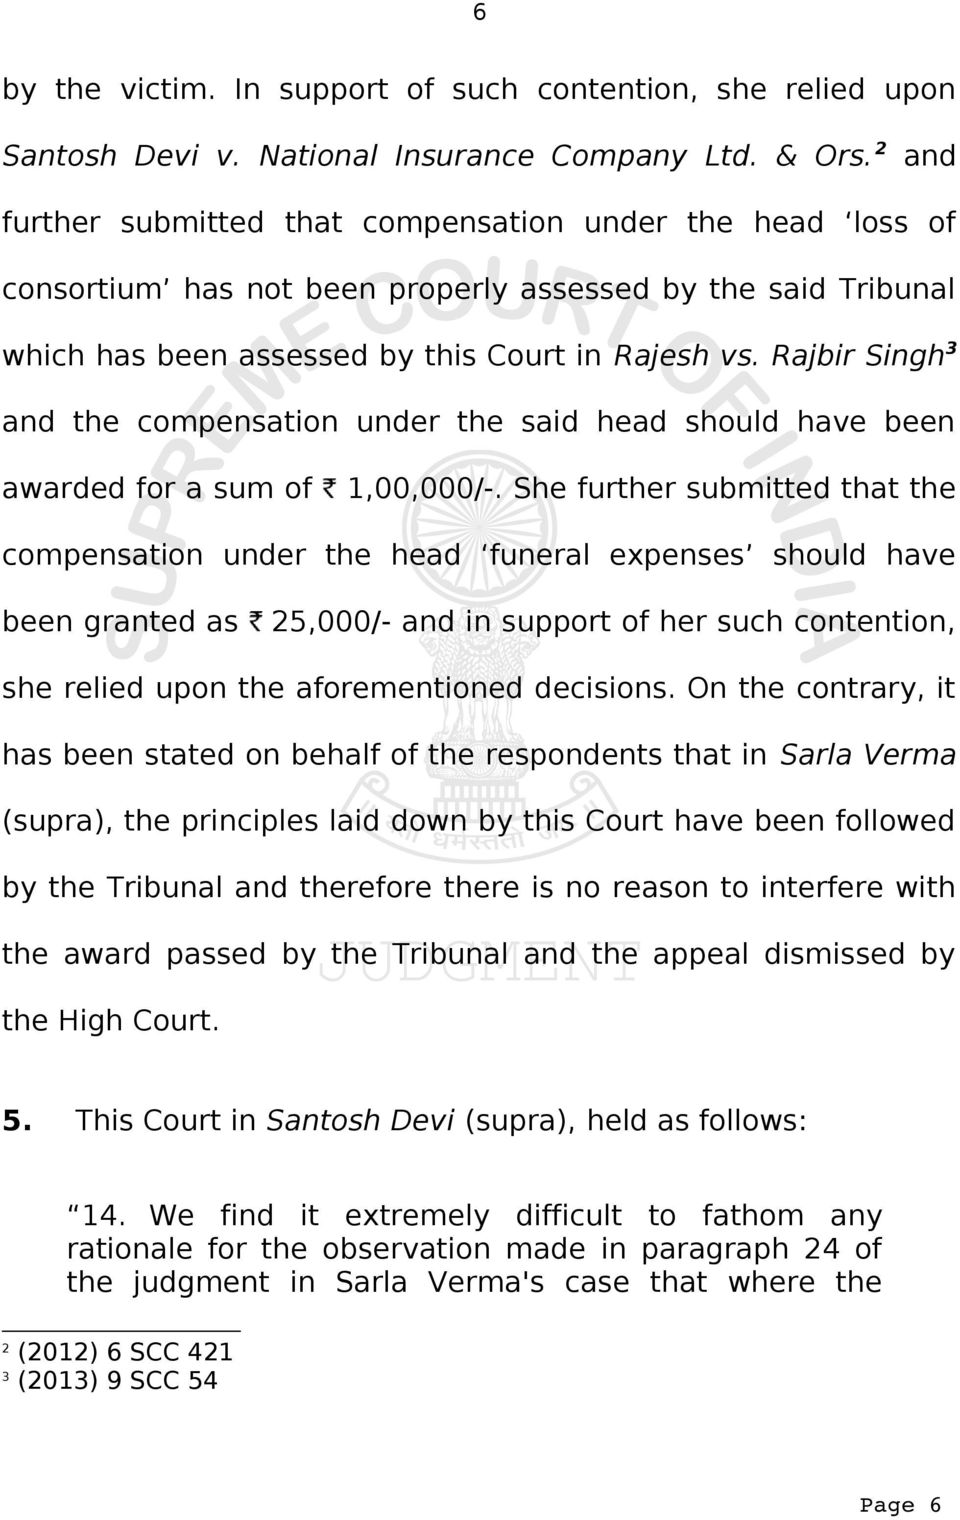 Rajbir Singh 3 and the compensation under the said head should have been awarded for a sum of 1,00,000/-.